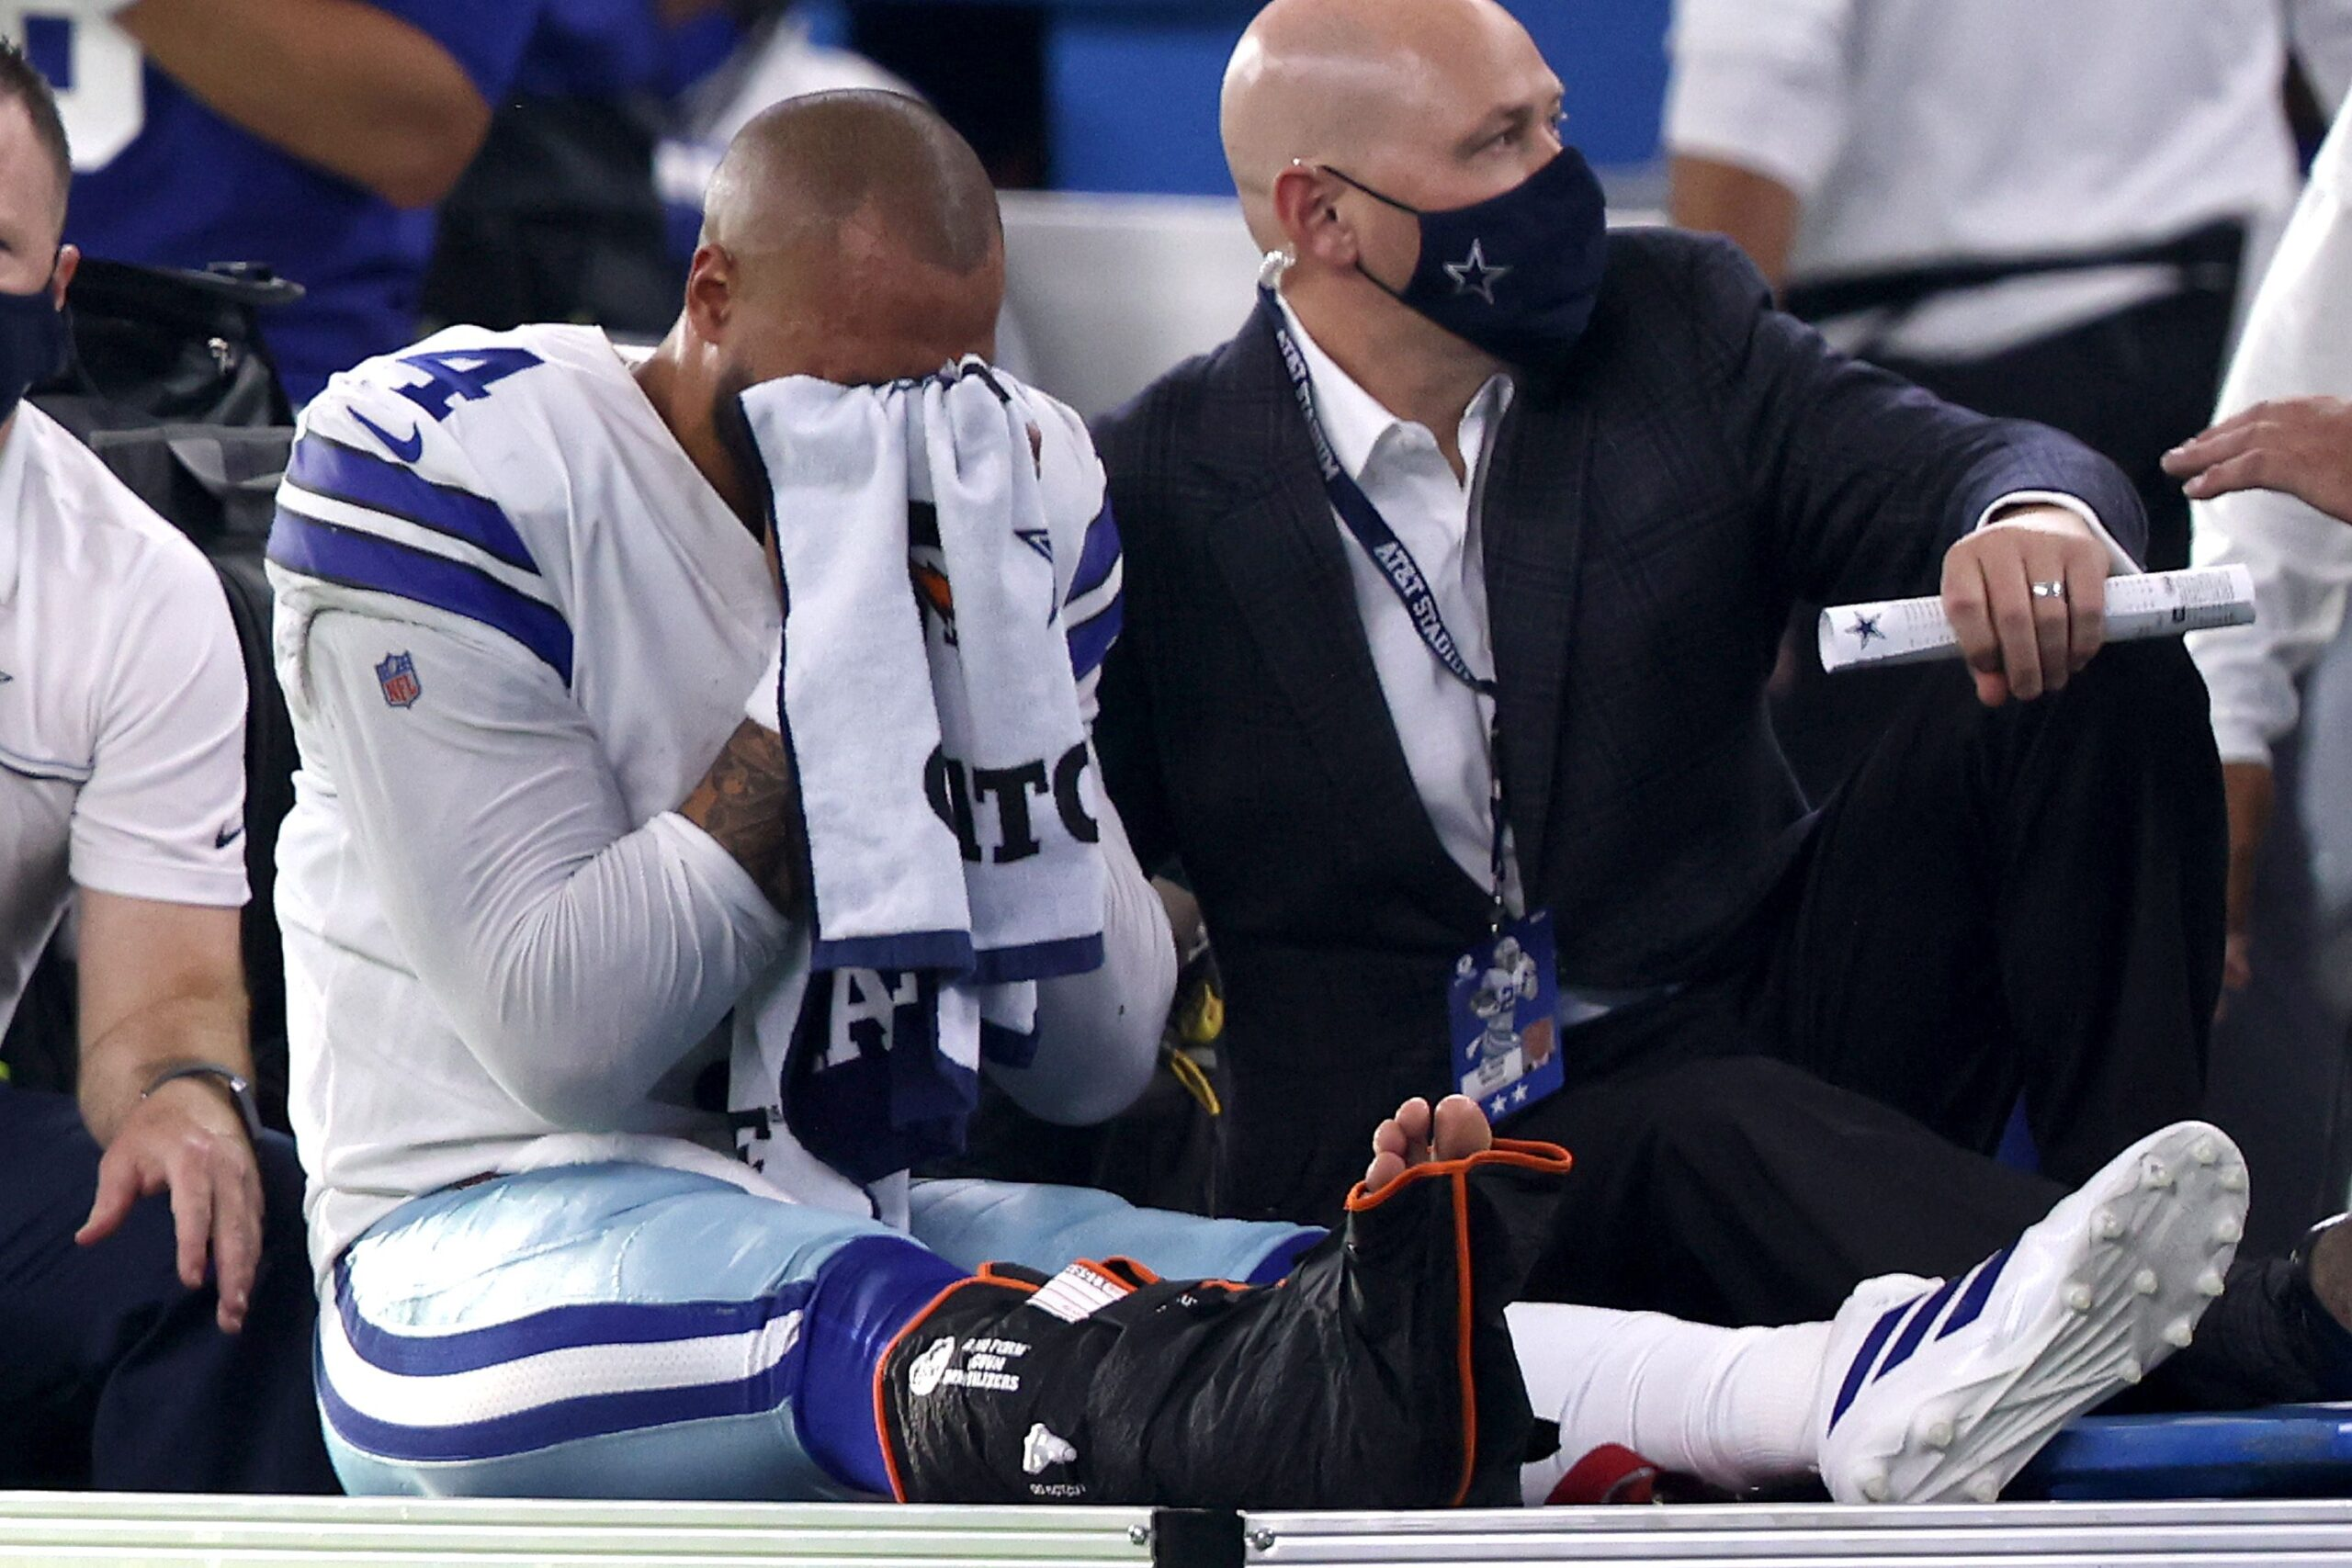 LISTEN: USA Health's Dr. Mark Perry goes in depth on Dak Prescott's gruesome ankle injury suffered on Sunday Night Football